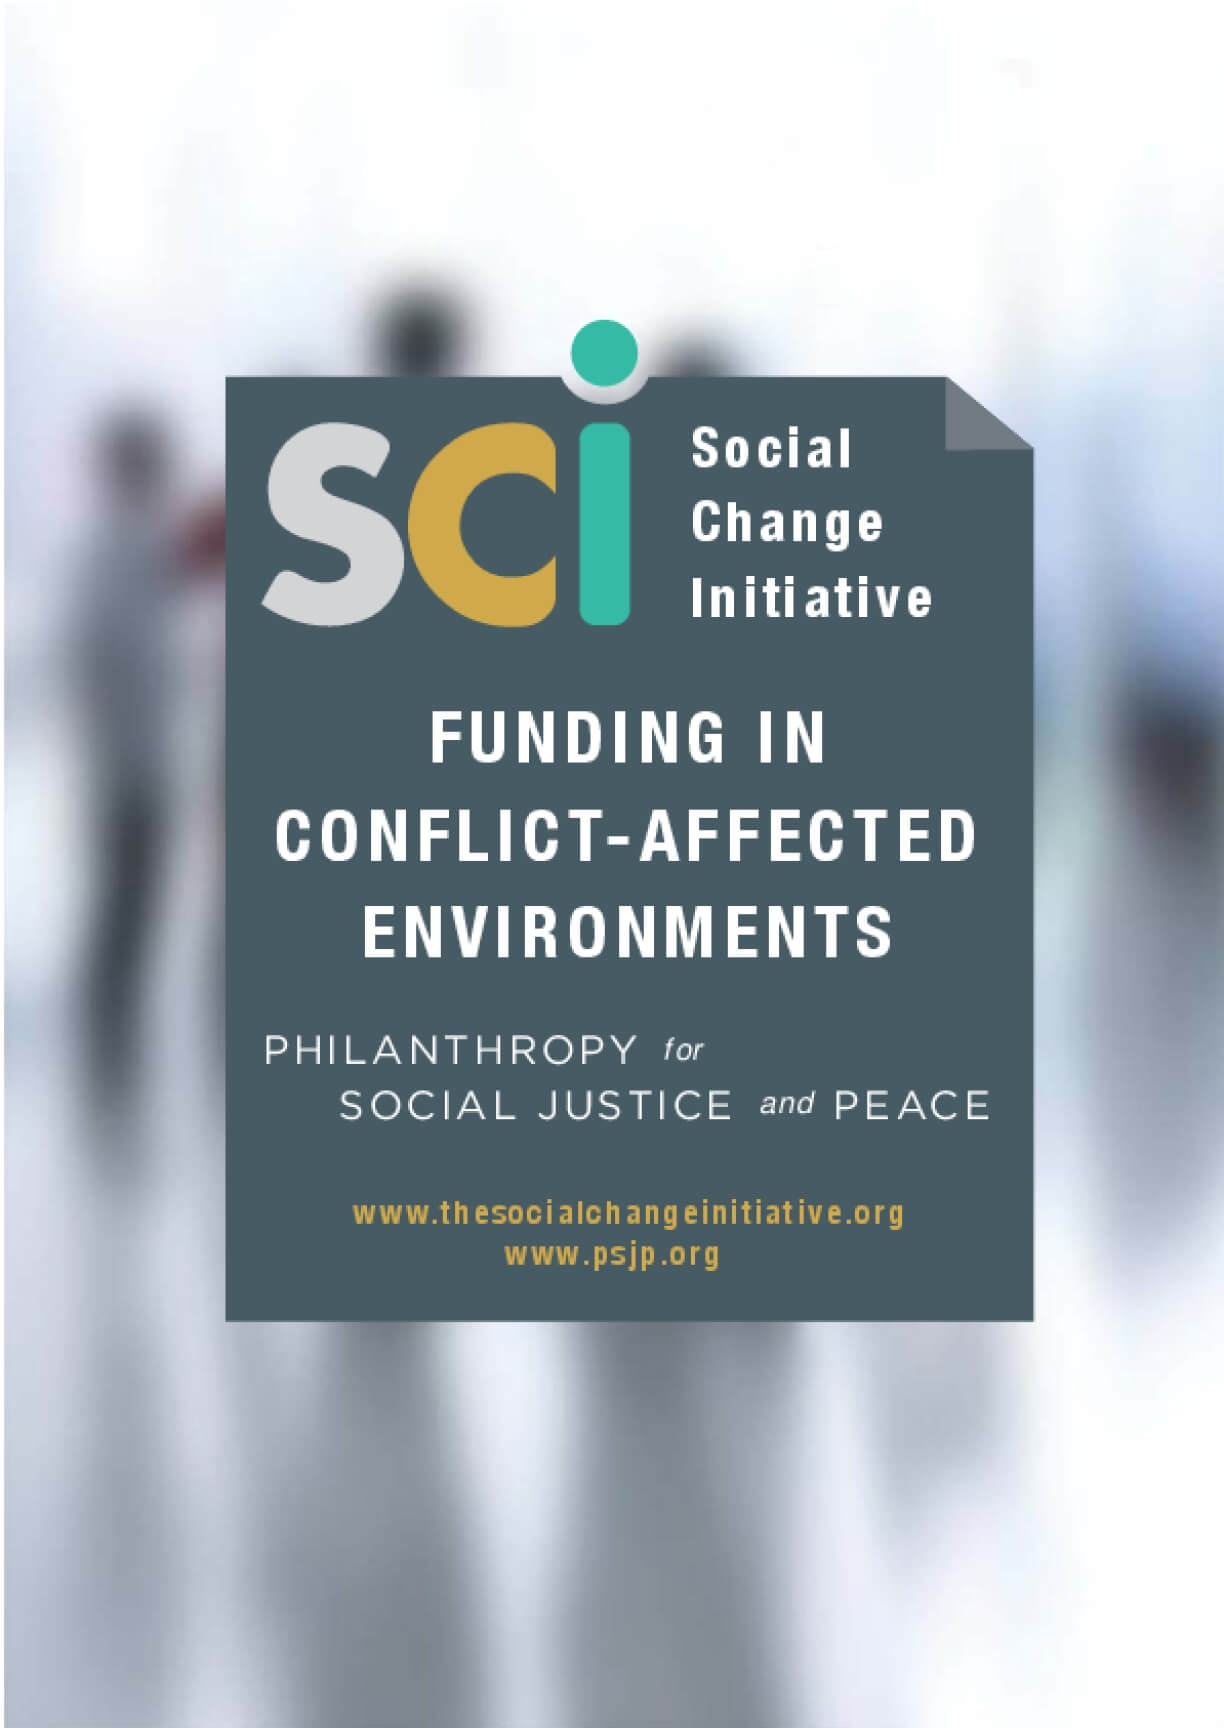 Funding in Conflict-Affected Environments